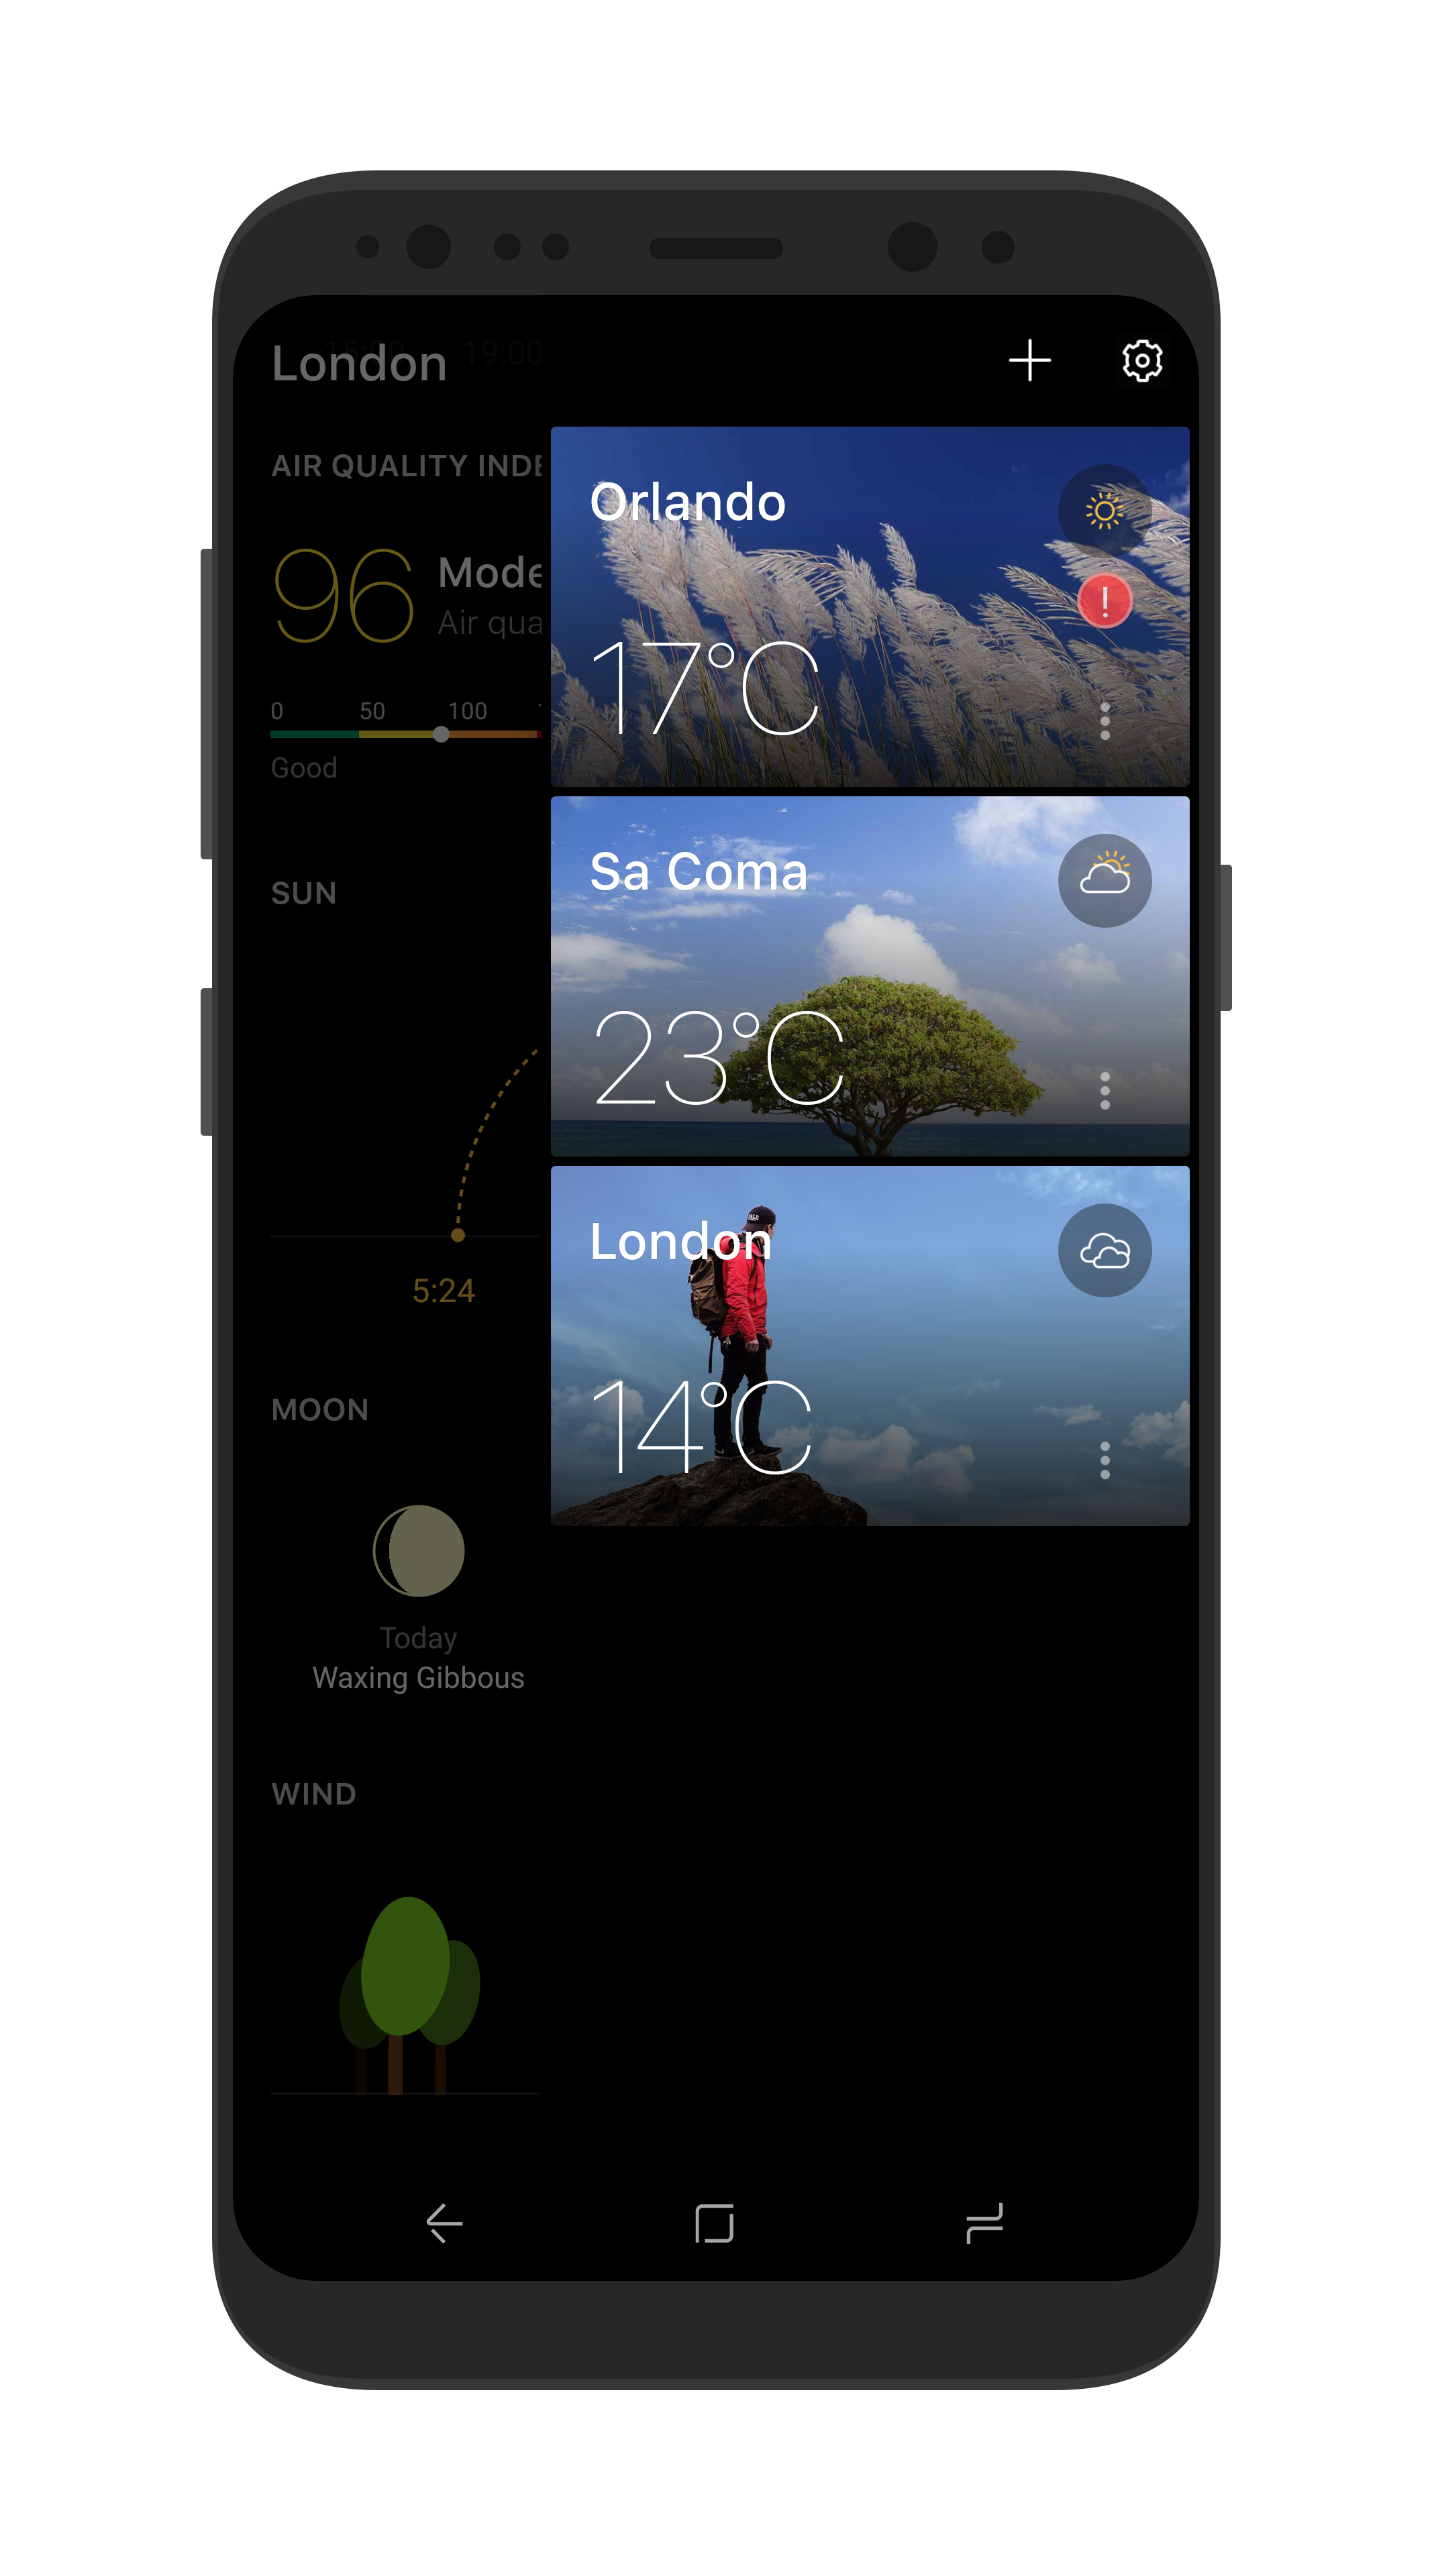 Today Weather - Forecast Android app review